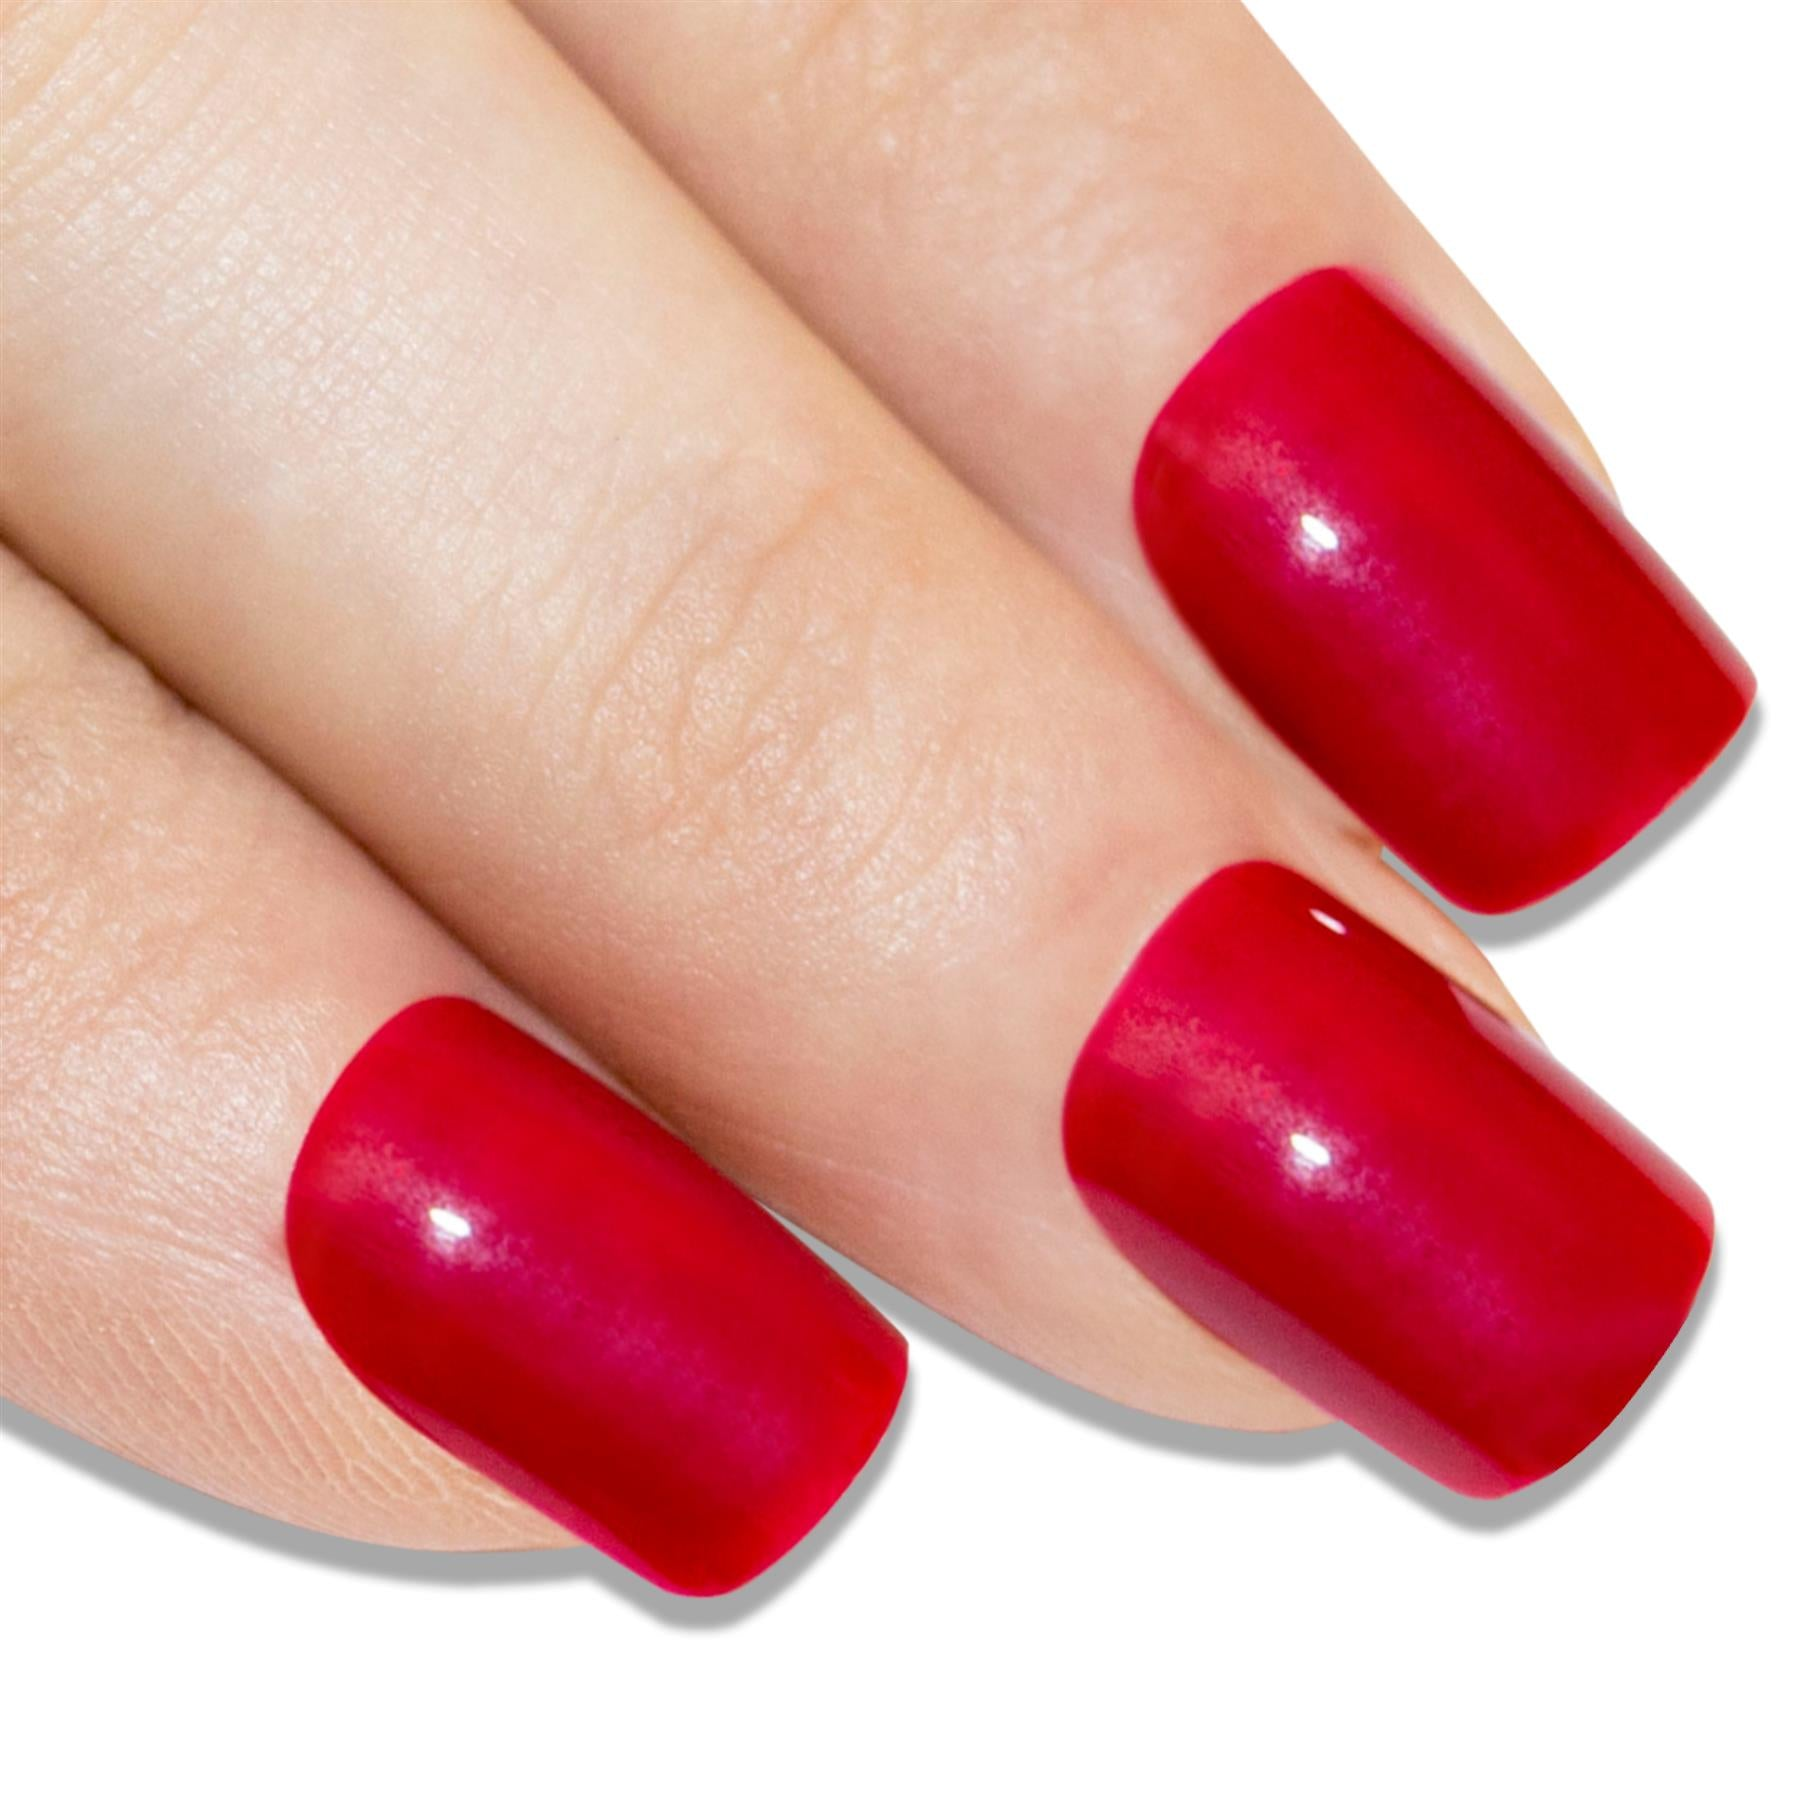 False Nails by Bling Art Red Polished French Manicure Fake Medium Tips with Glue, Nail Care by Bling Art